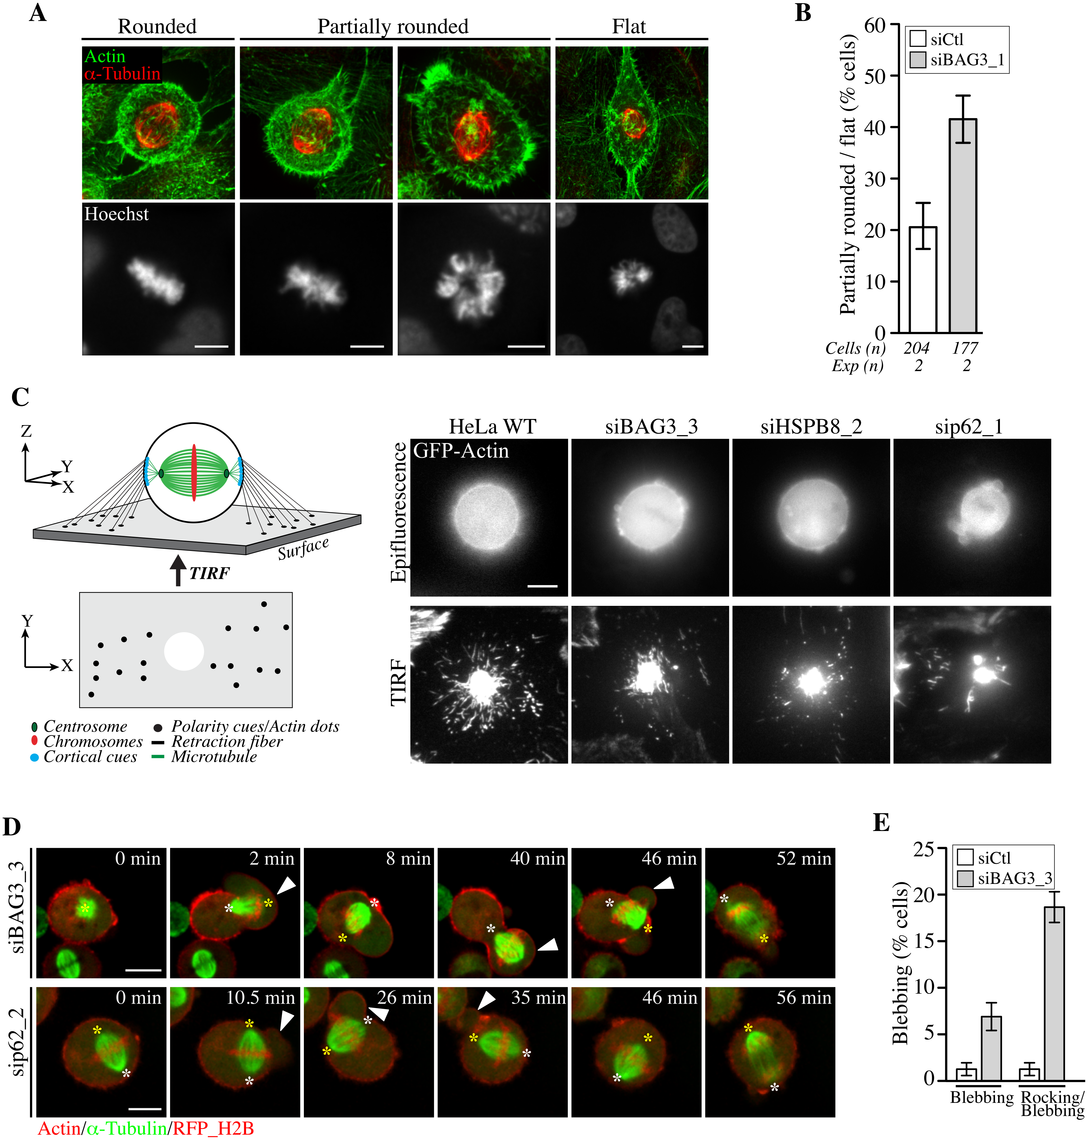 BAG3, HSPB8 and p62 regulate remodeling of mitotic F-actin structures.